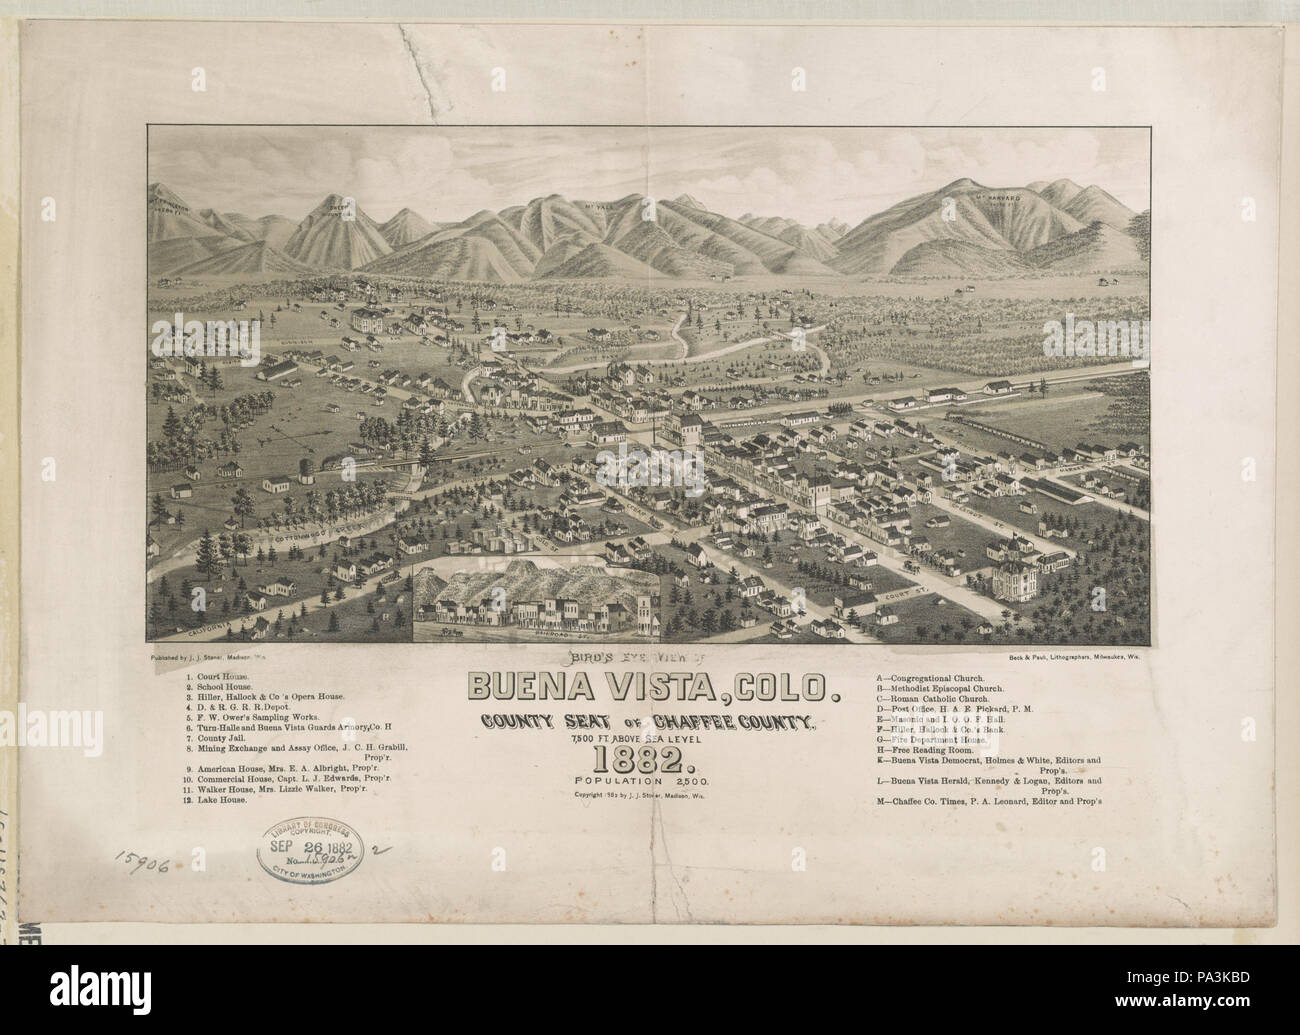 205 Bird's eye view of Buena Vista, Colo. County Seat of Chaffee County 1882 LCCN2003654954 - Stock Image